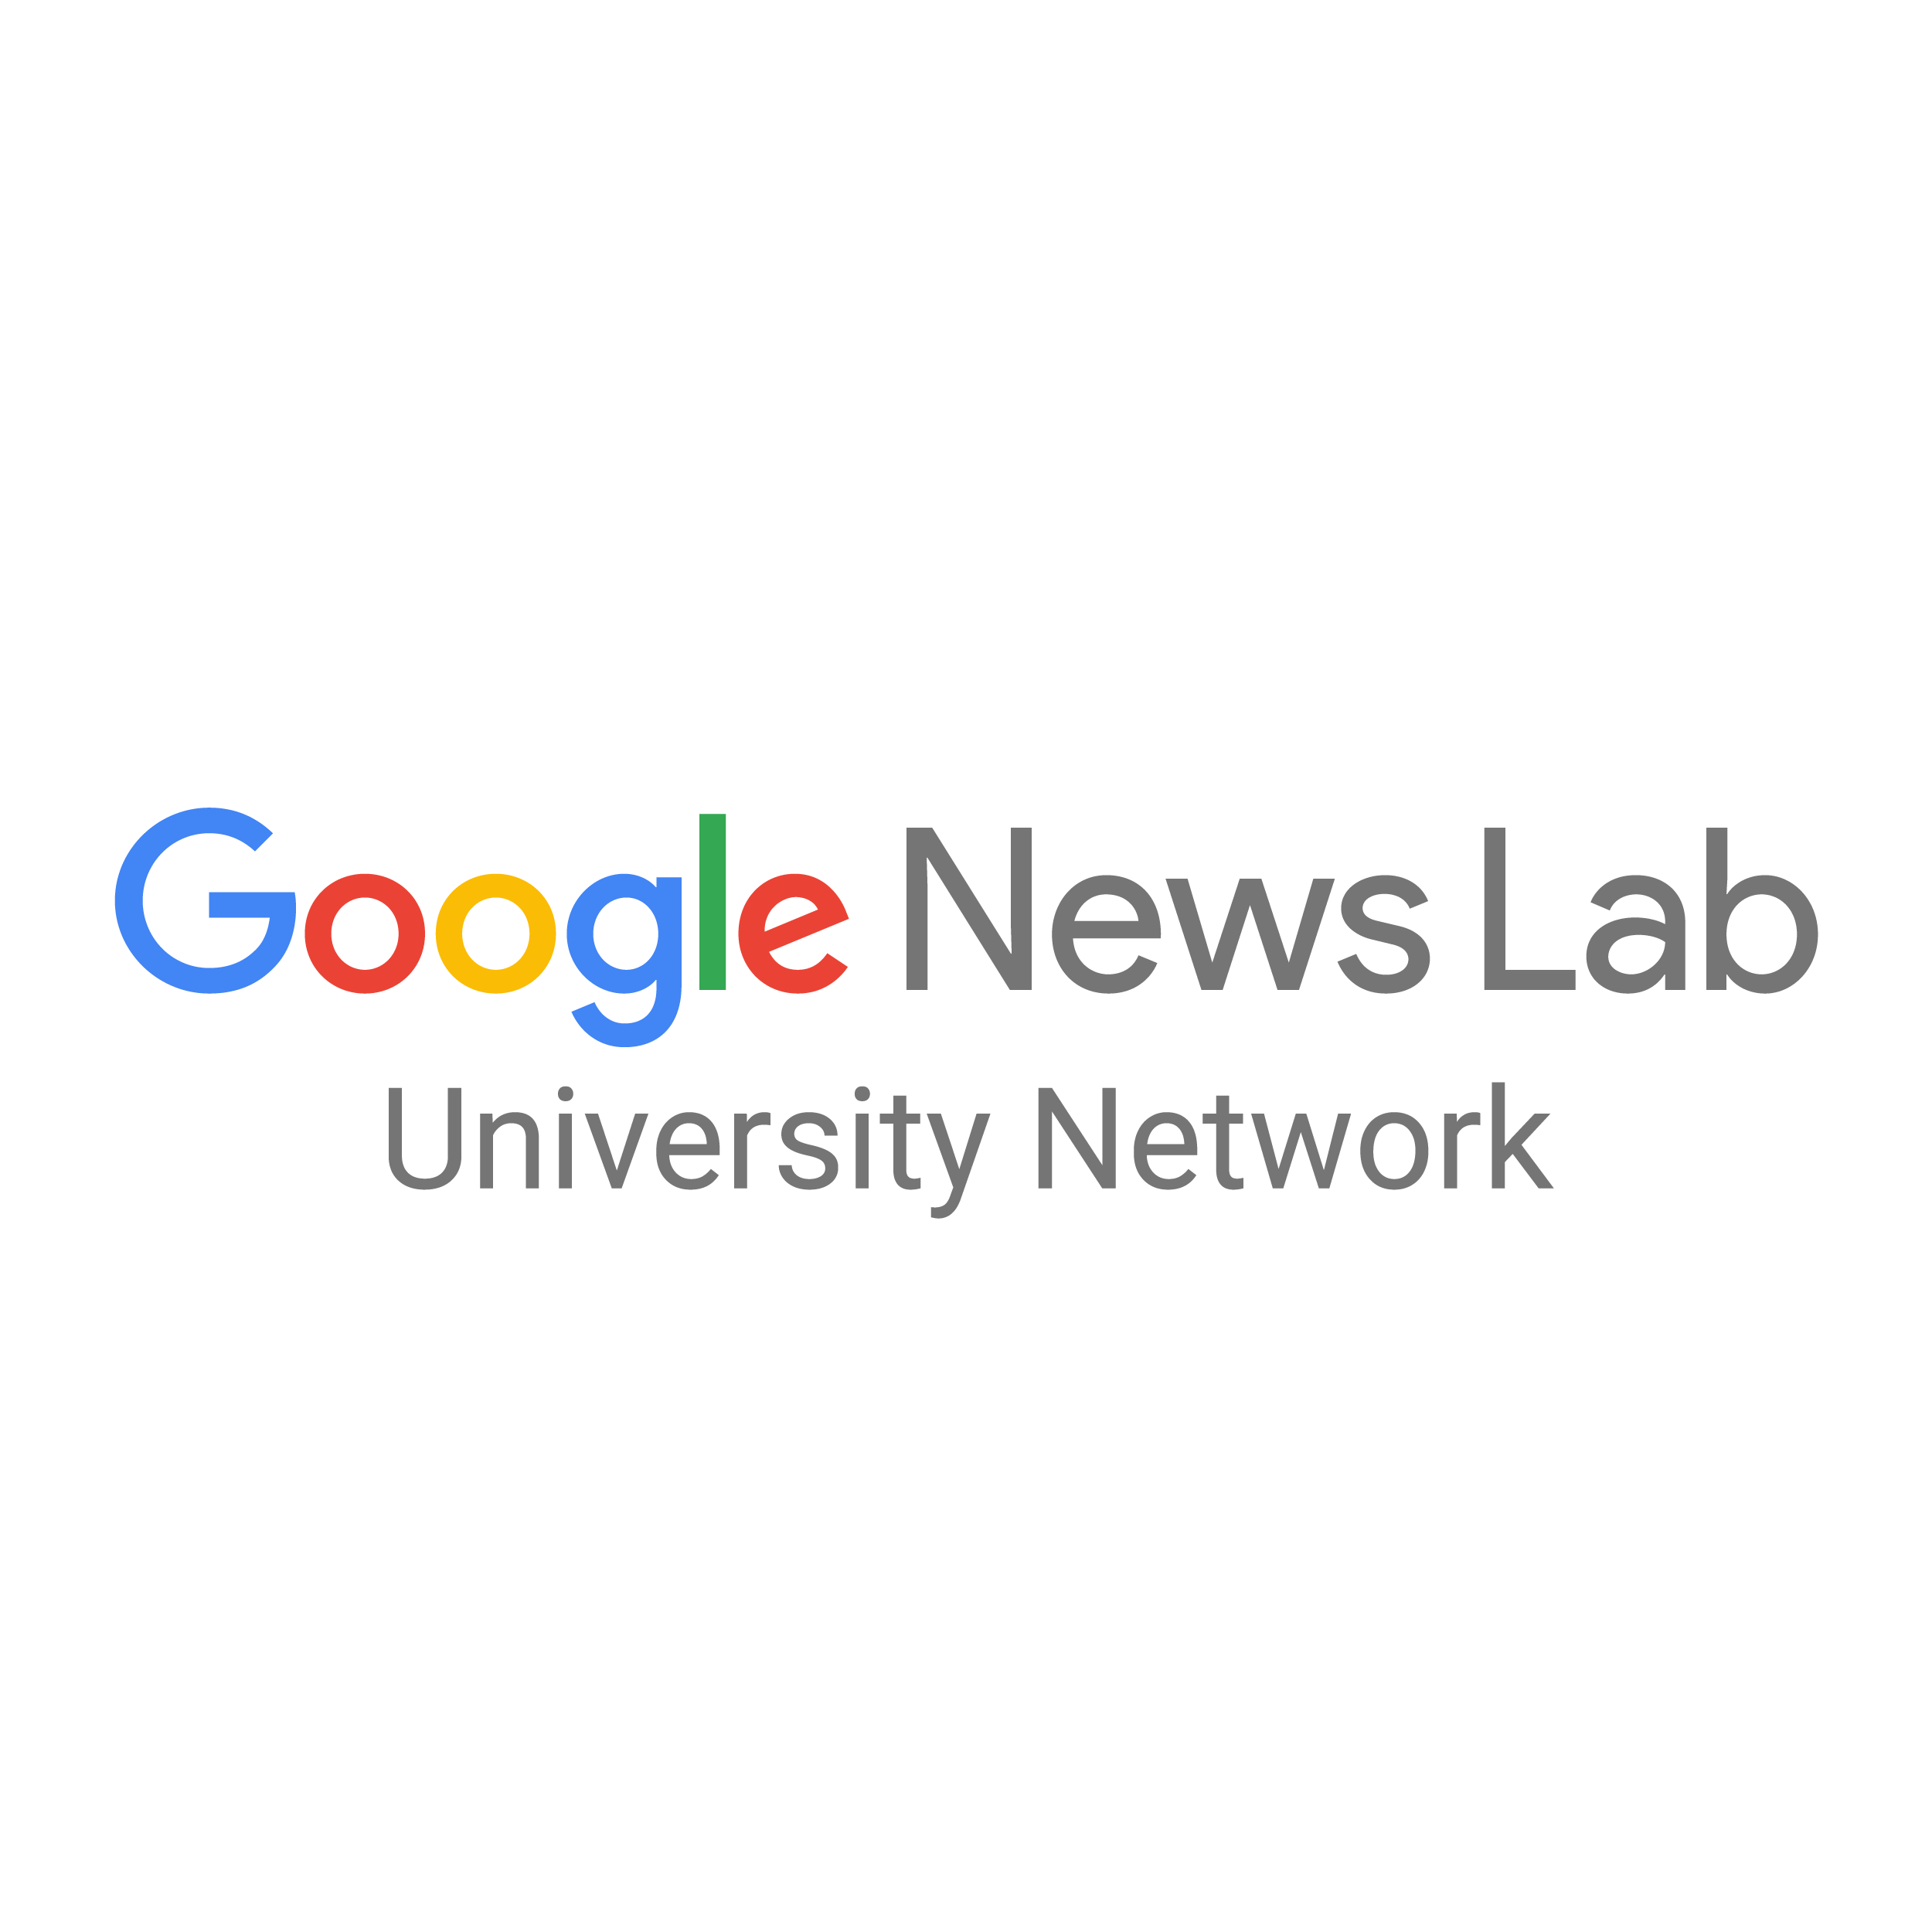 Google News Lab University Network logo